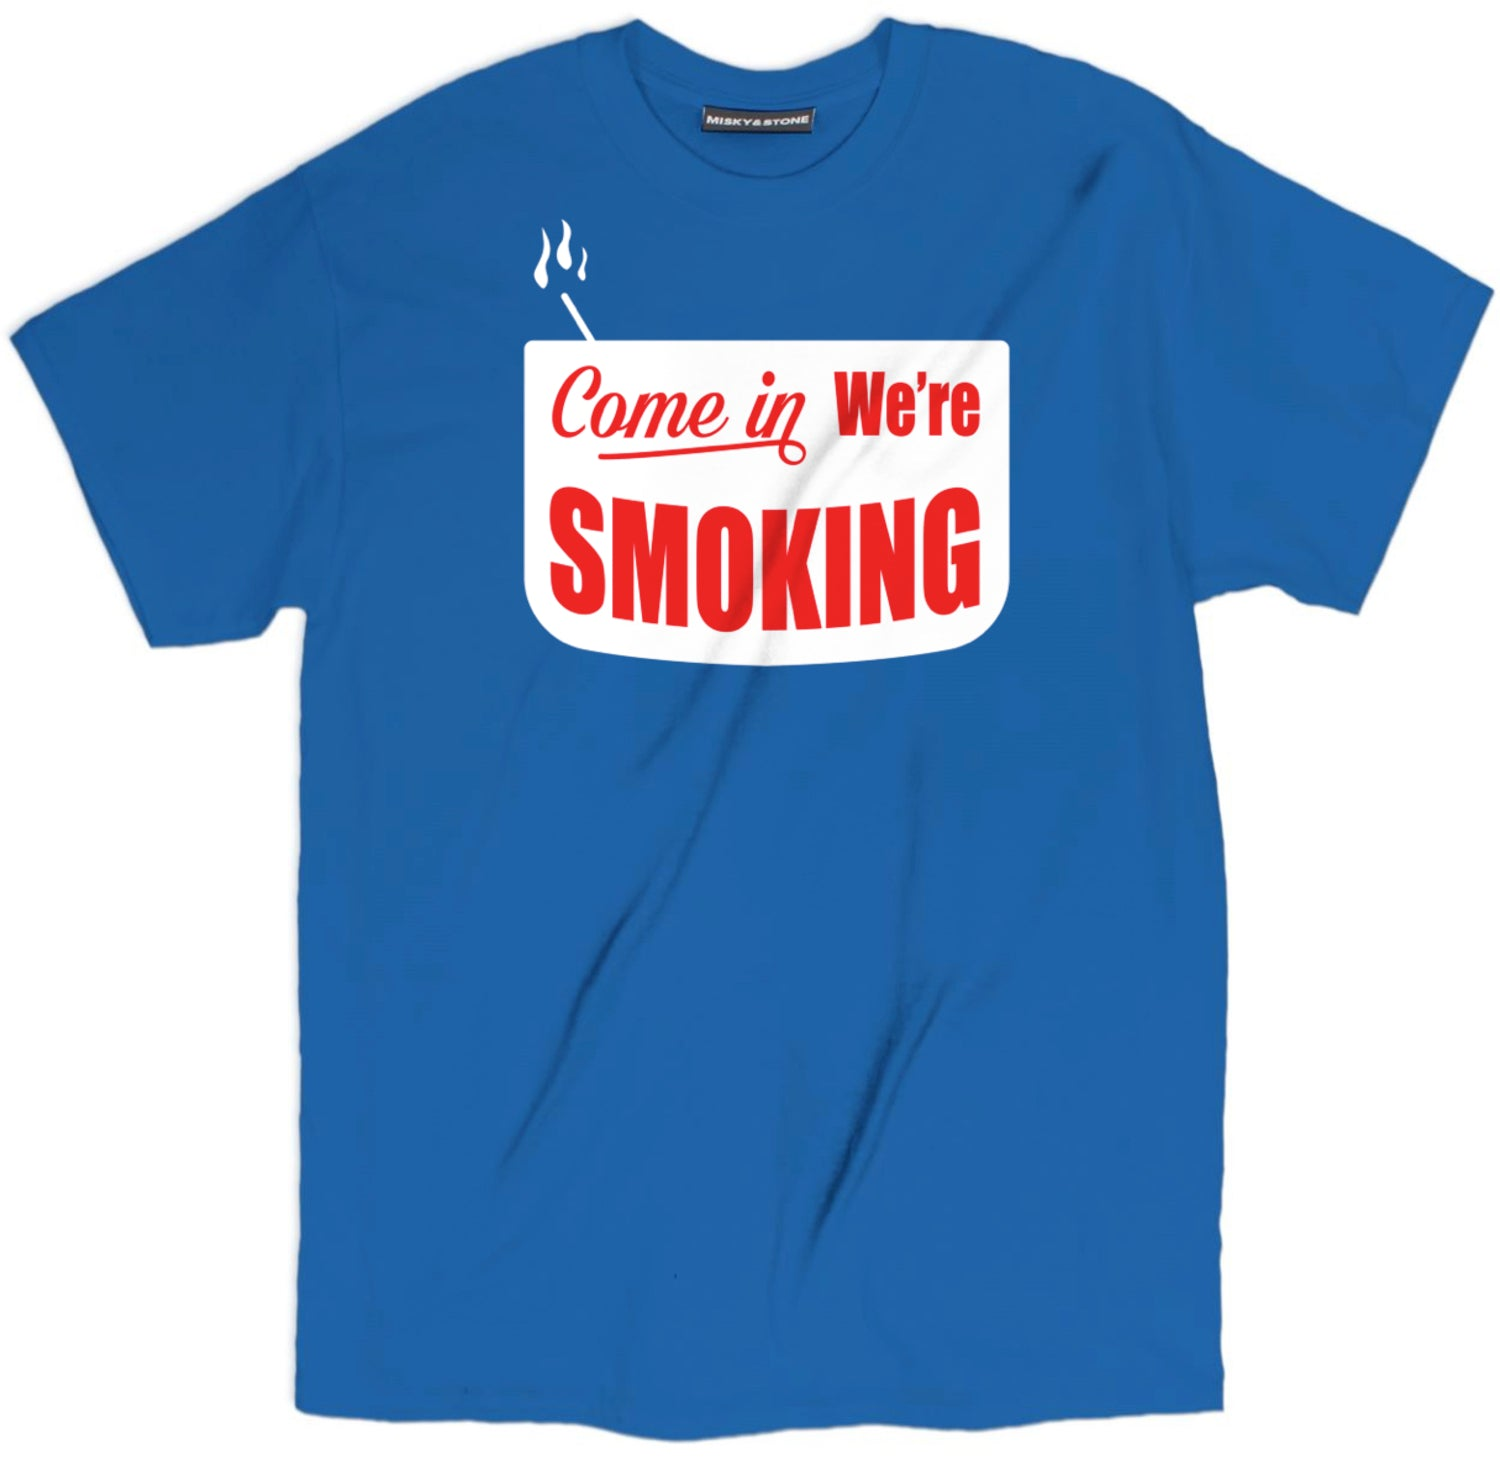 come in we're smoking t shirt, weed shirts, weed t shirts, 420 shirts, 420 t shirts, marijuana shirts, marijuana t shirts, 420 tees, marijuana t shirts, weed tee shirts, 420 clothing,